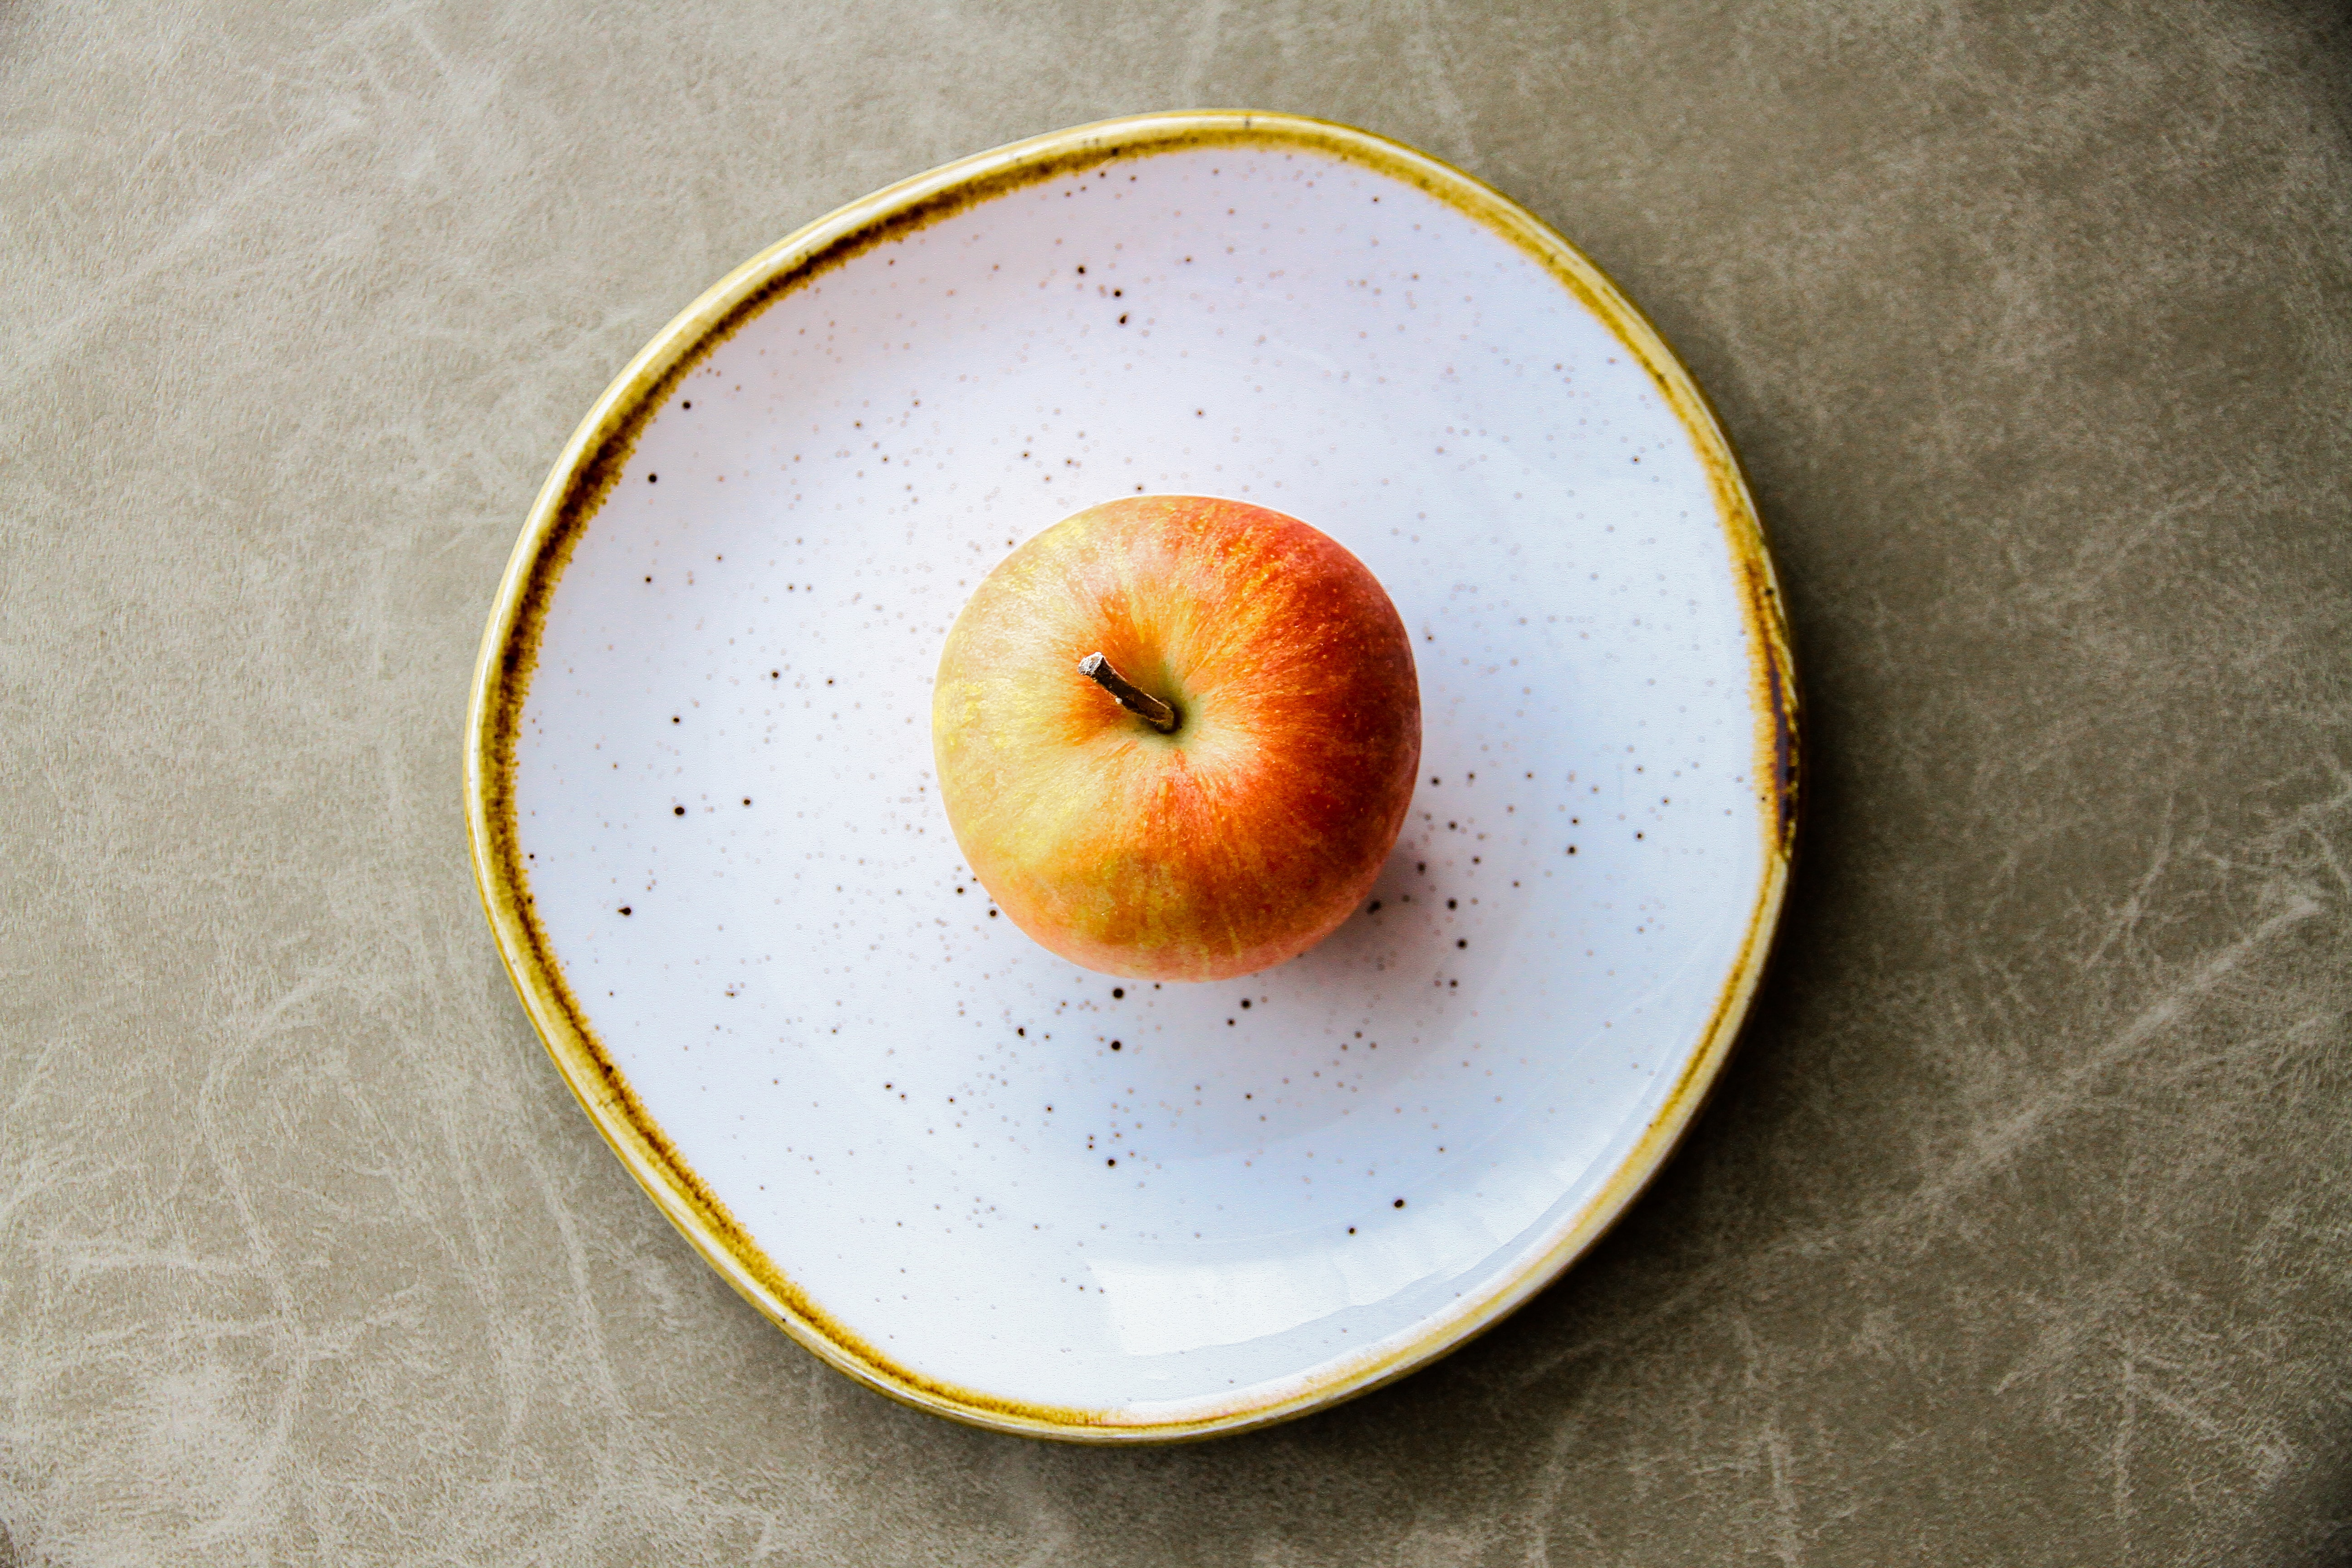 Apple on white plate